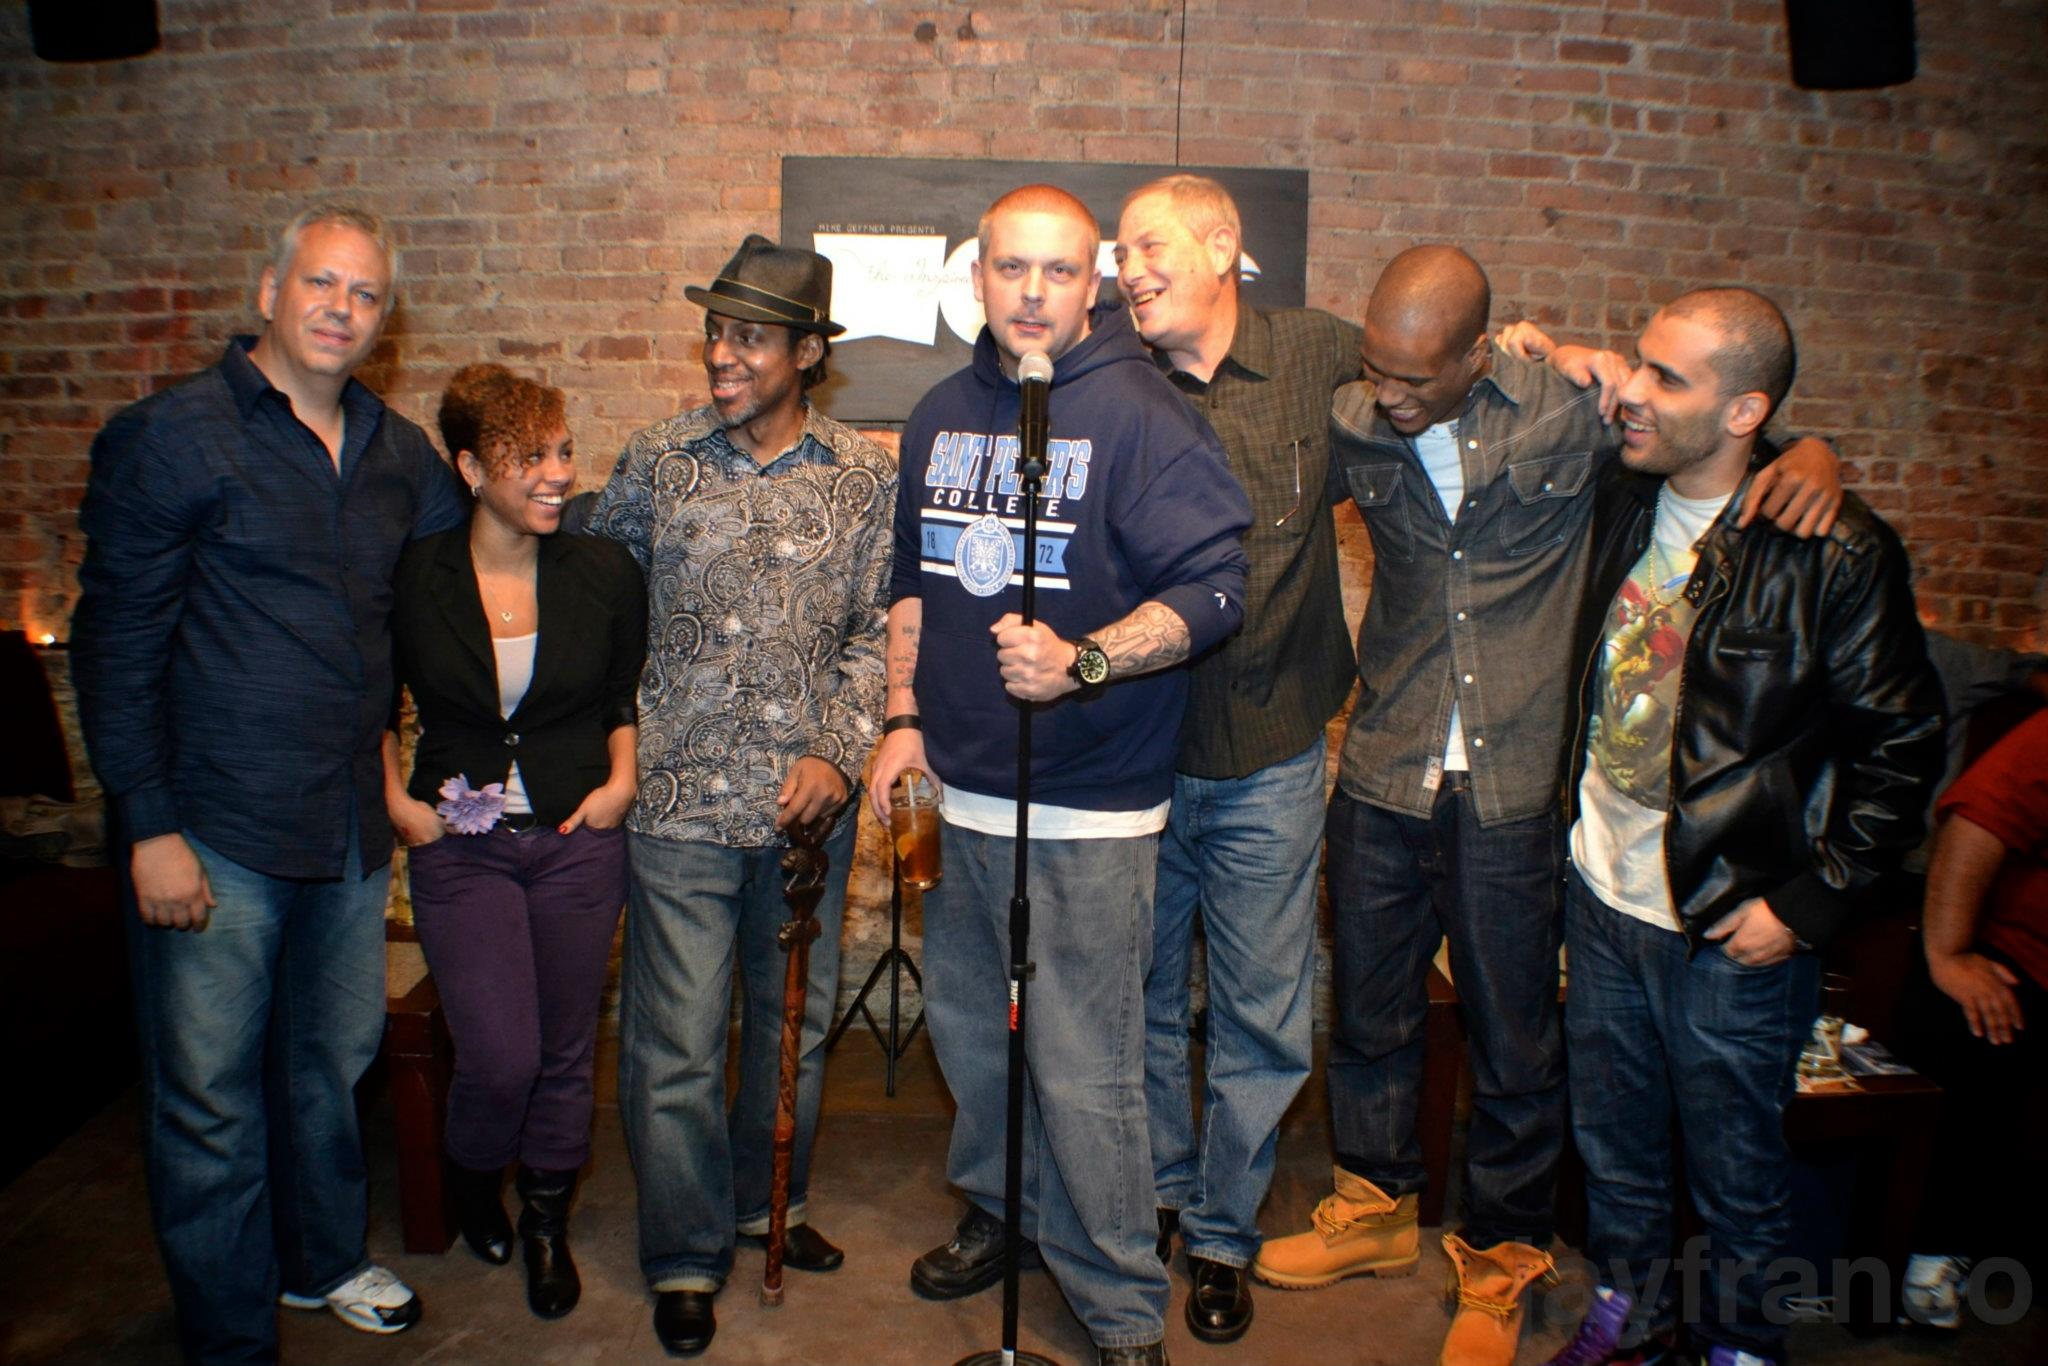 mc/host/HBO Def Poetry Star, Gemineye posing with TIW family